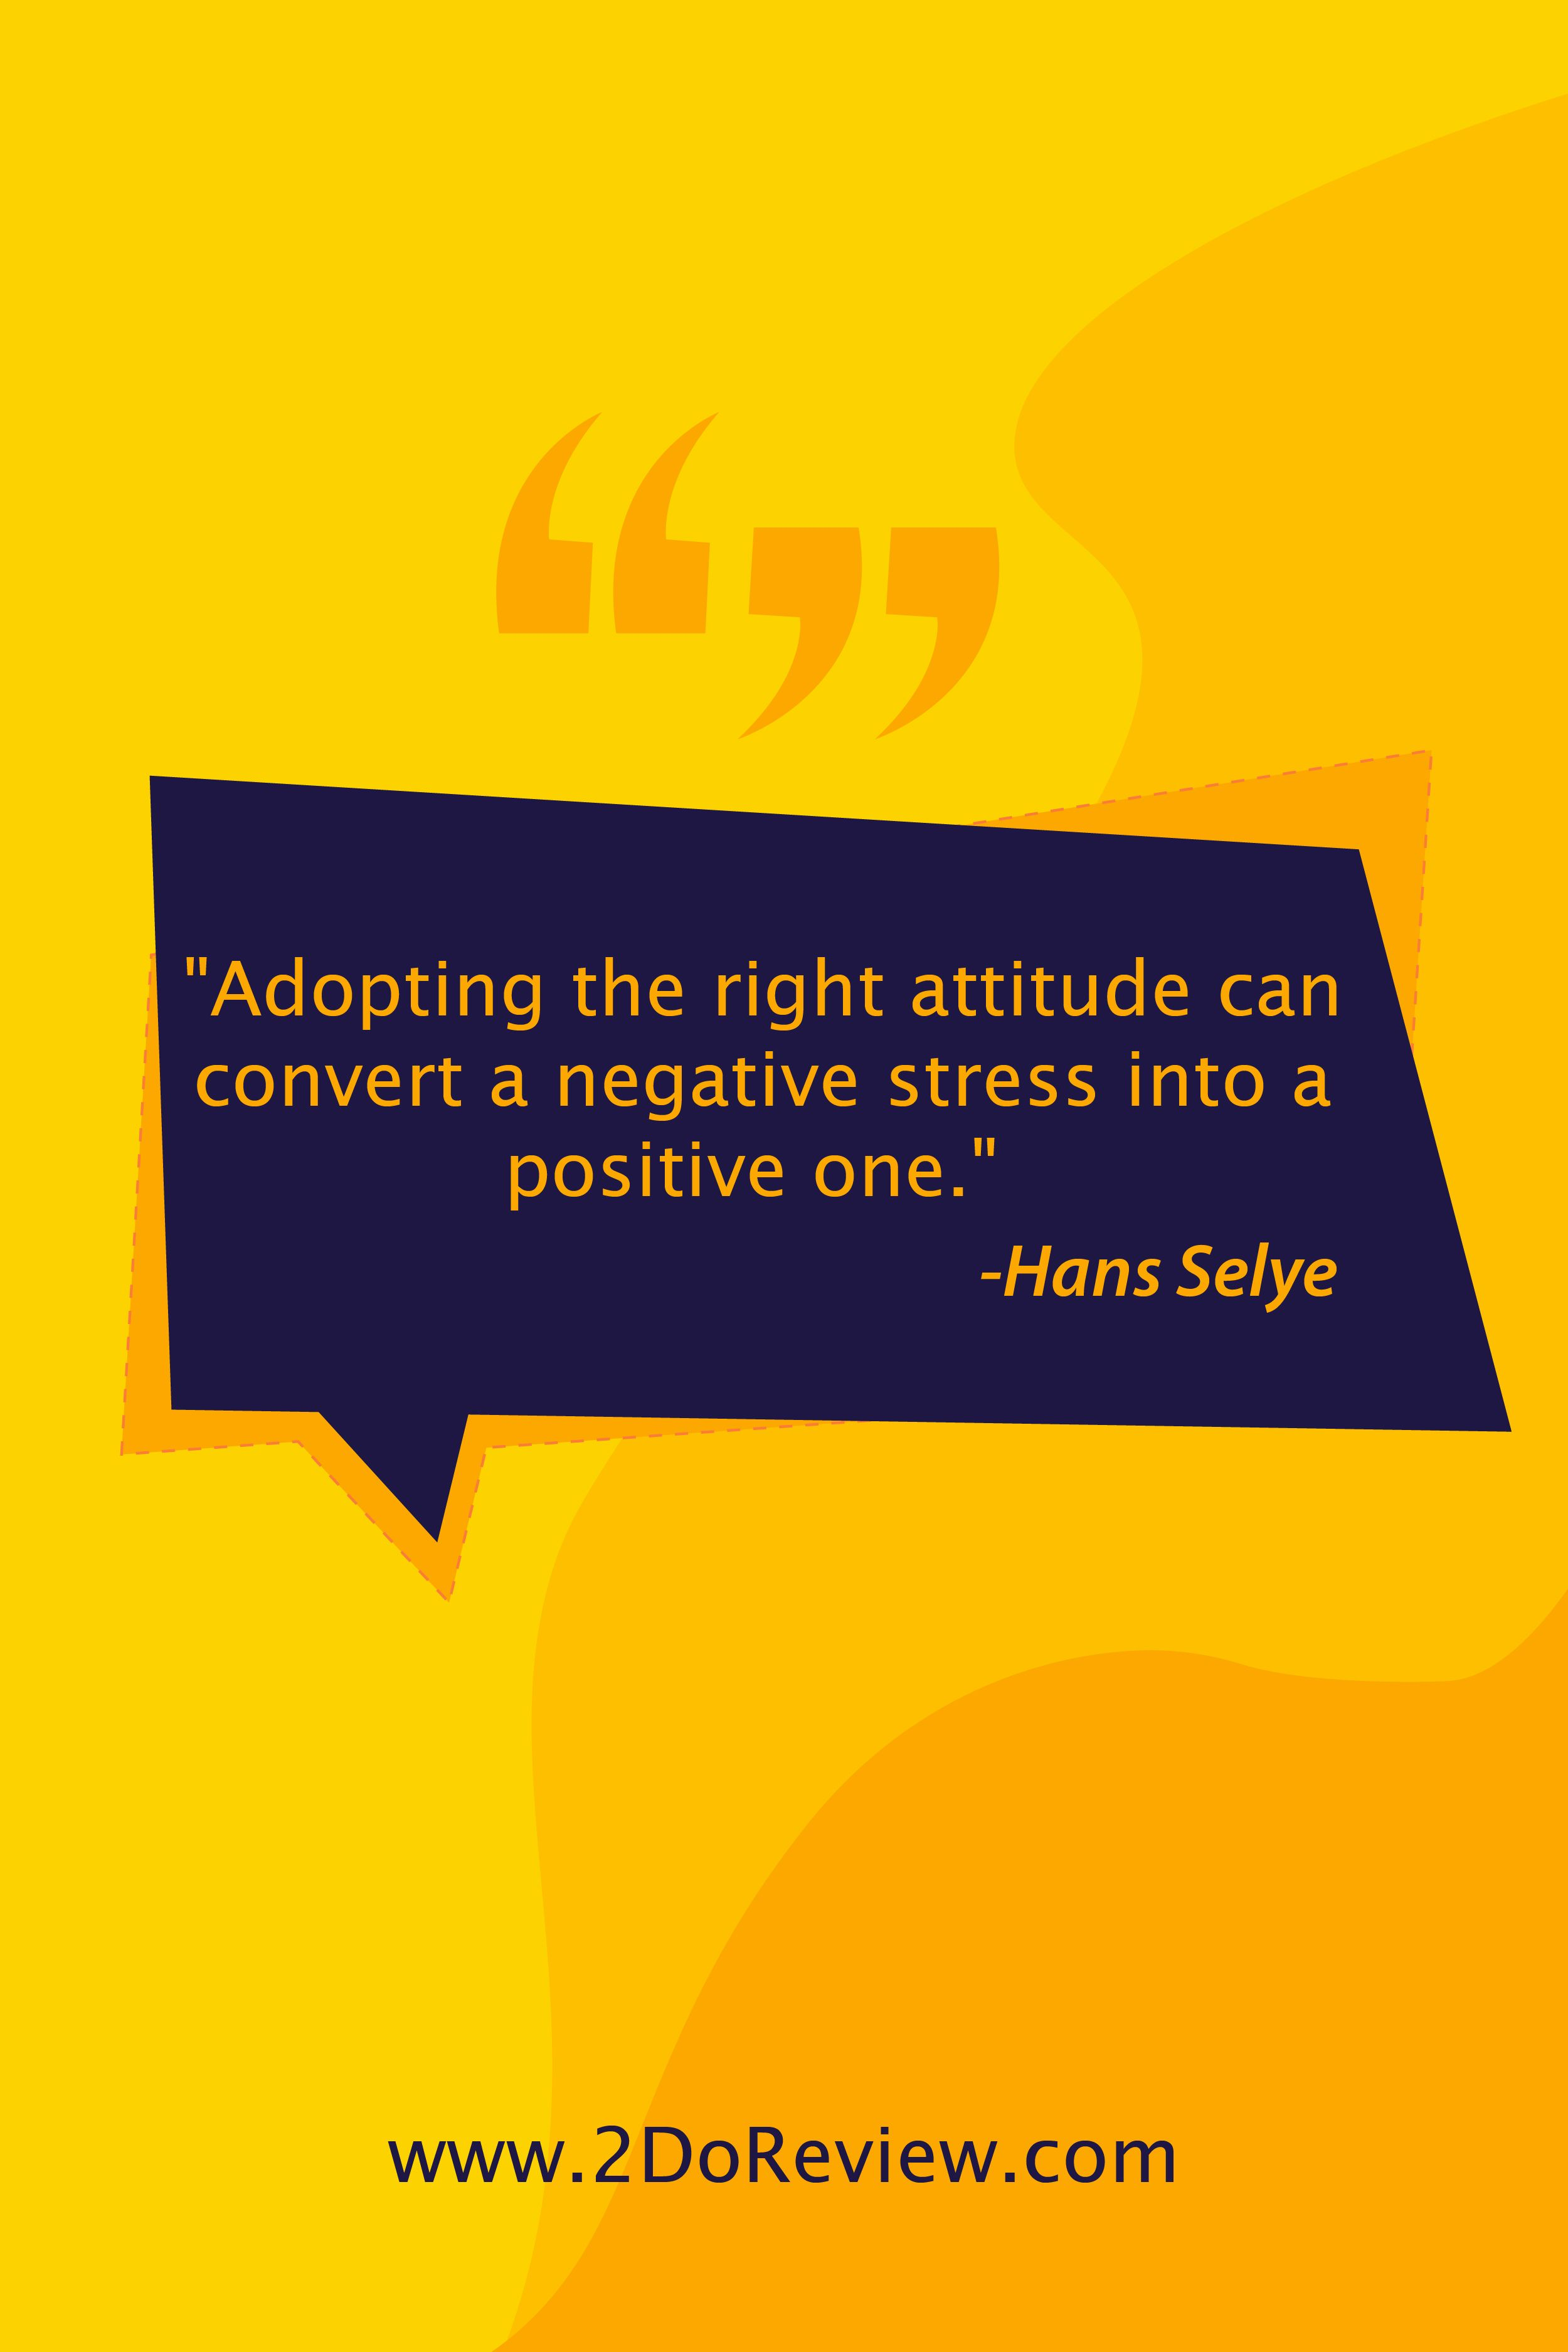 Adopting The Right Attitude Can Convert A Negative Stress Into A